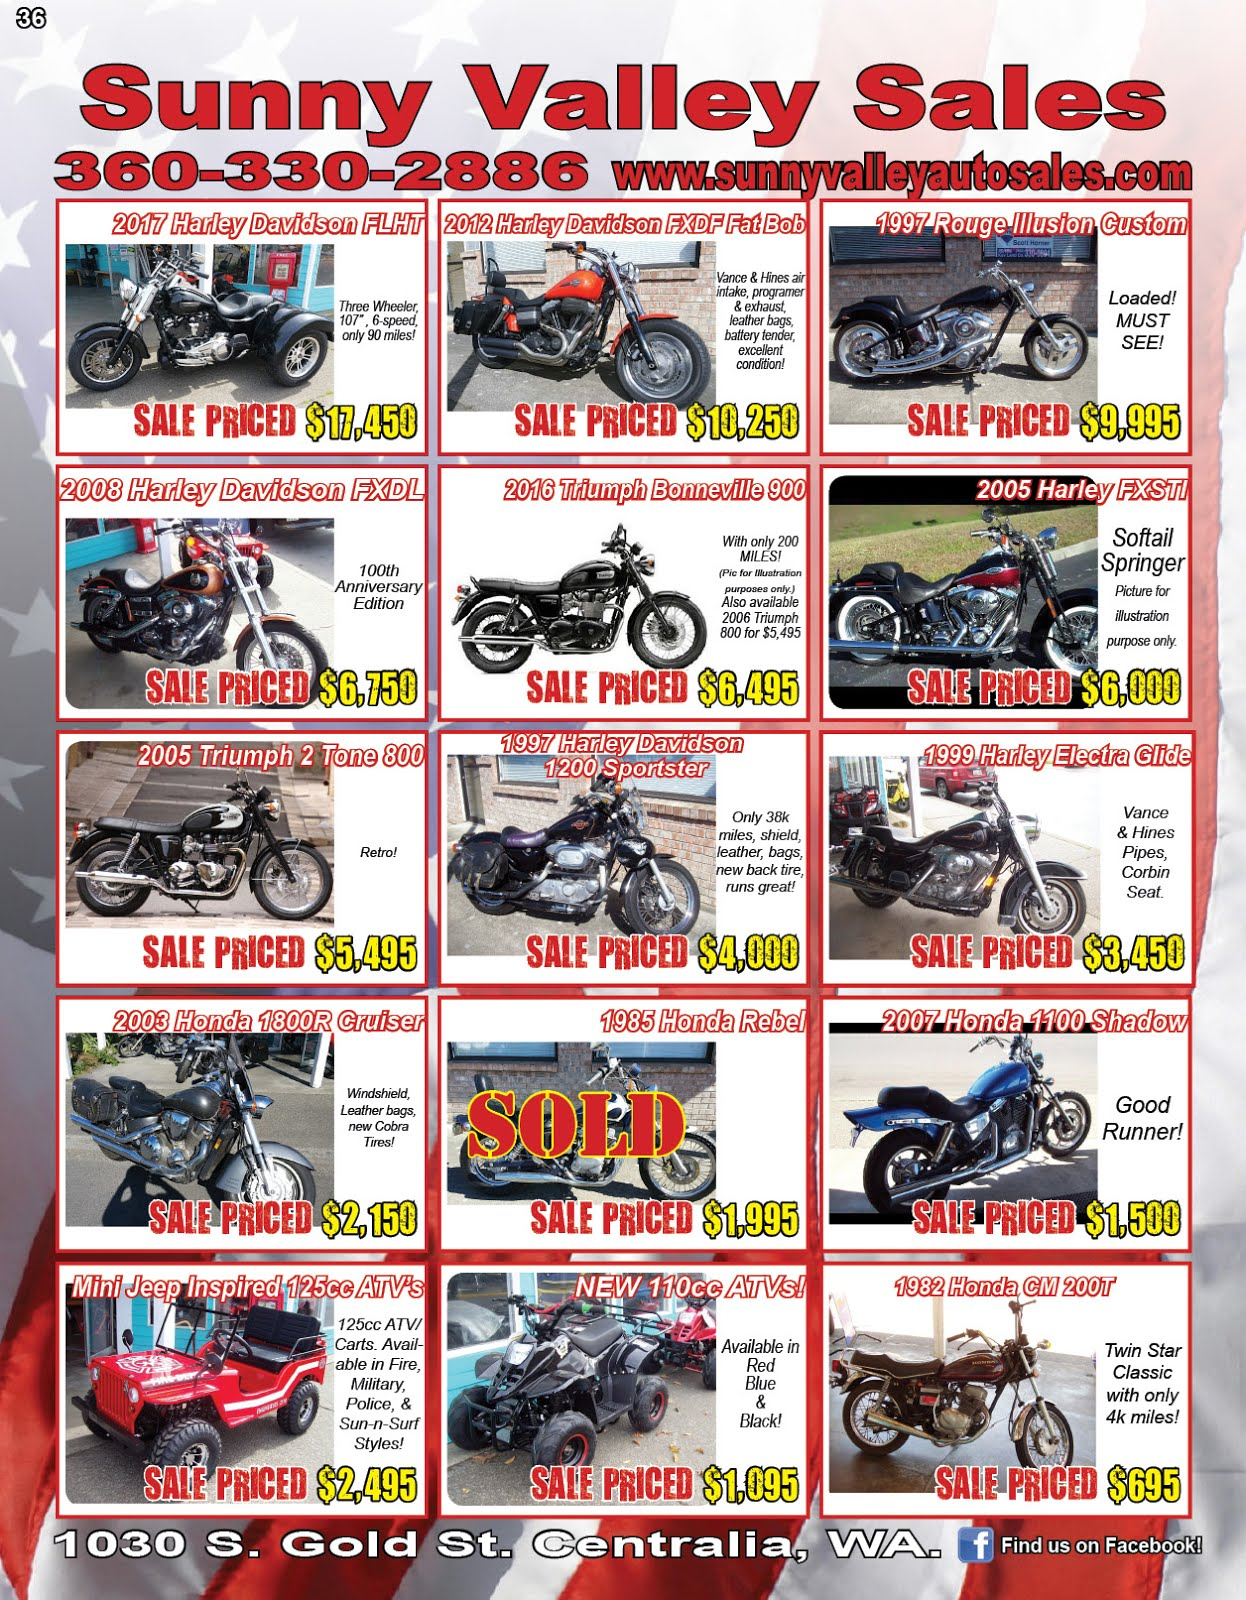 Sunny Valley Sales Used Motorcycles, New ATV's Mini Jeep ATV/Carts